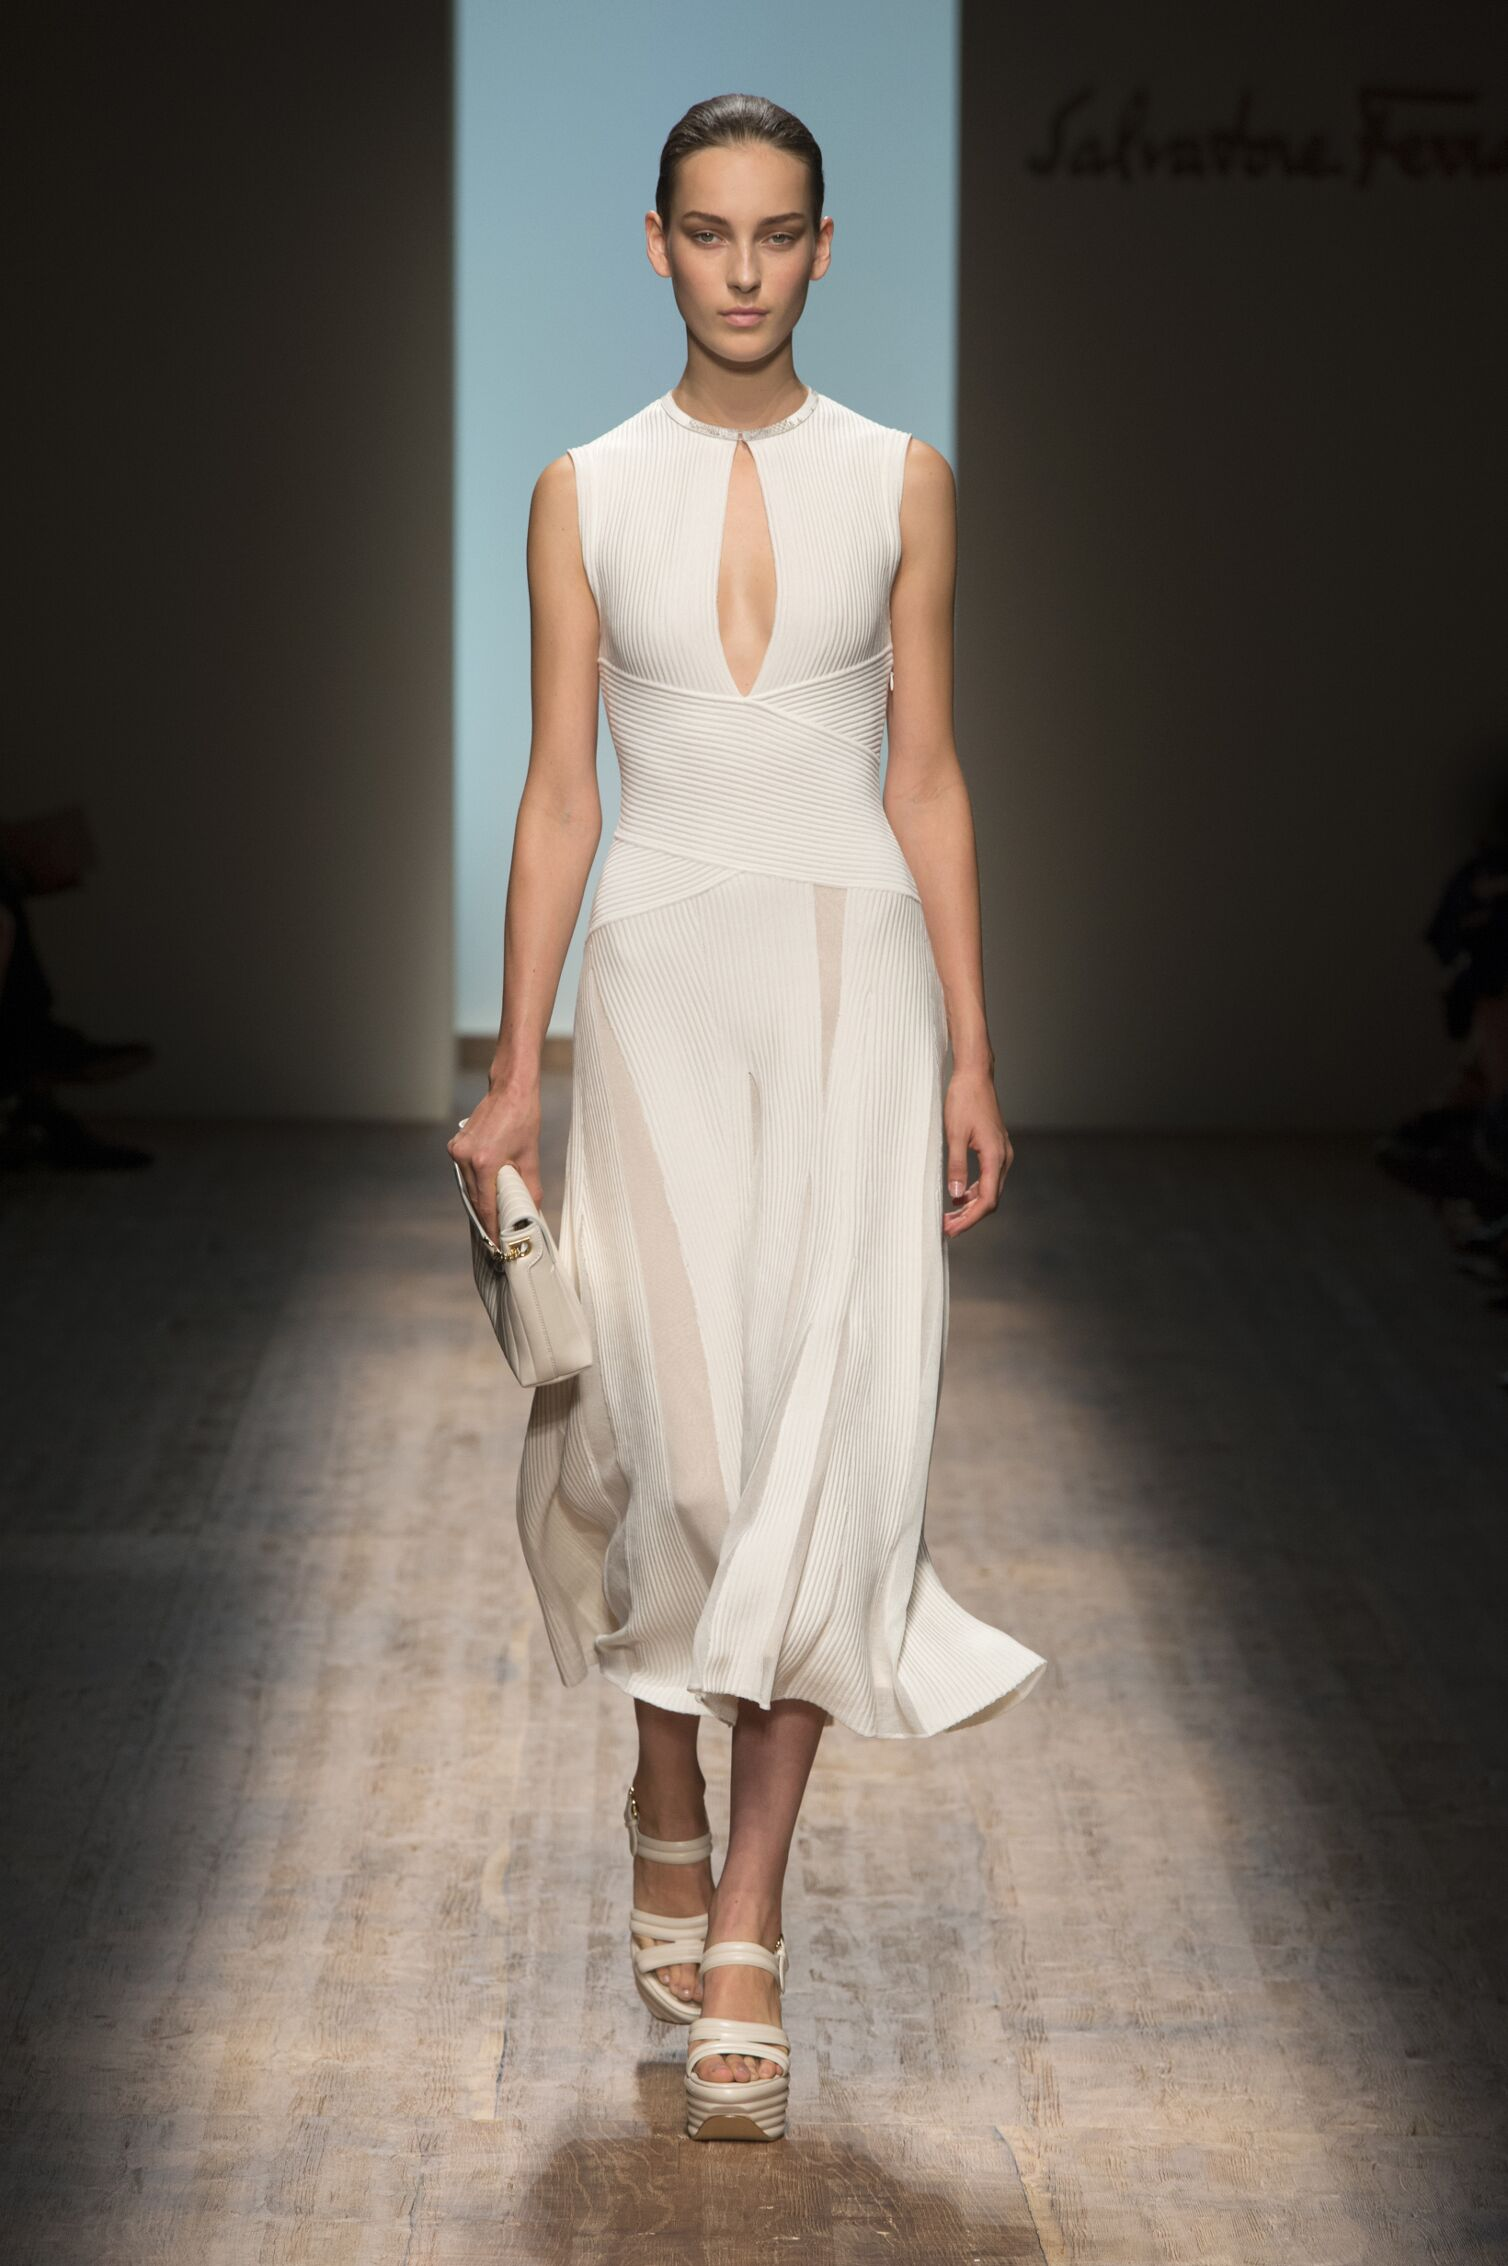 Summer Salvatore Ferragamo Trends 2015 Woman